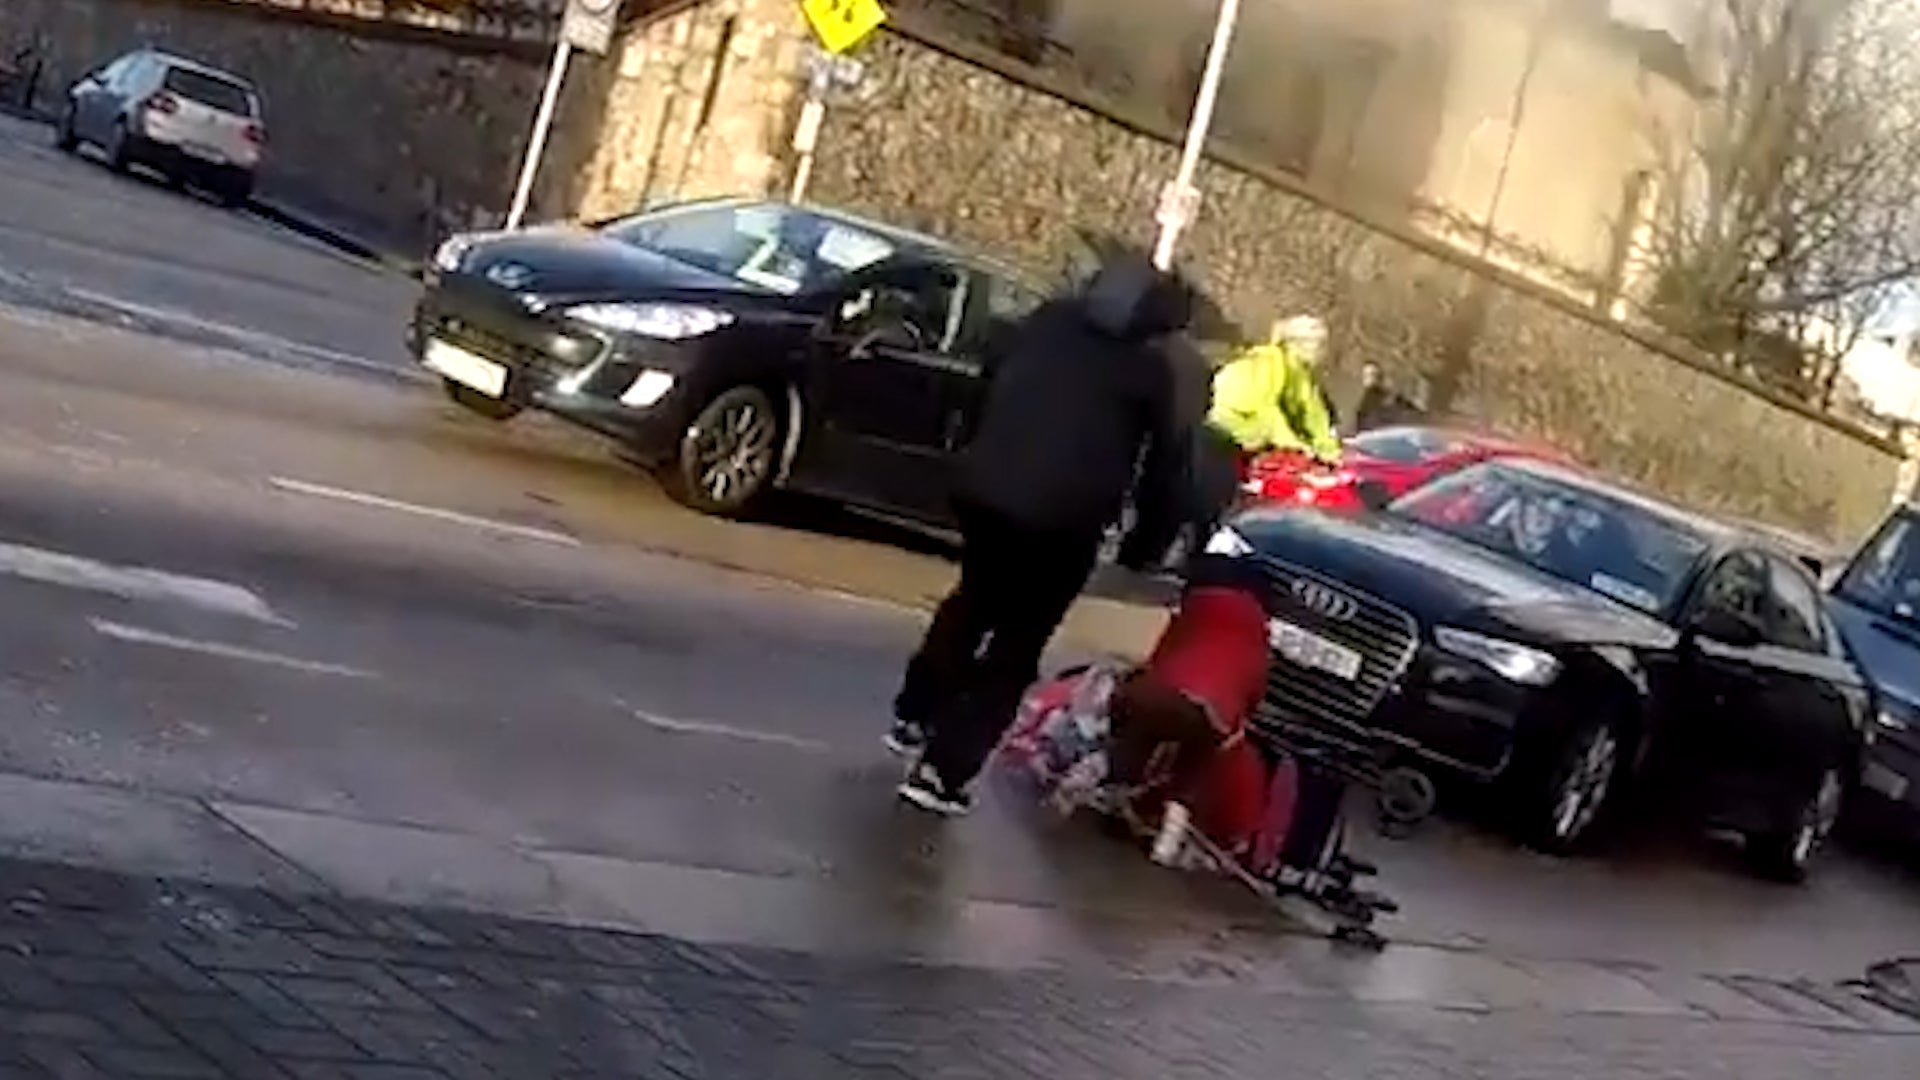 High Winds Push Toddler in Stroller into Oncoming Traffic in Dublin